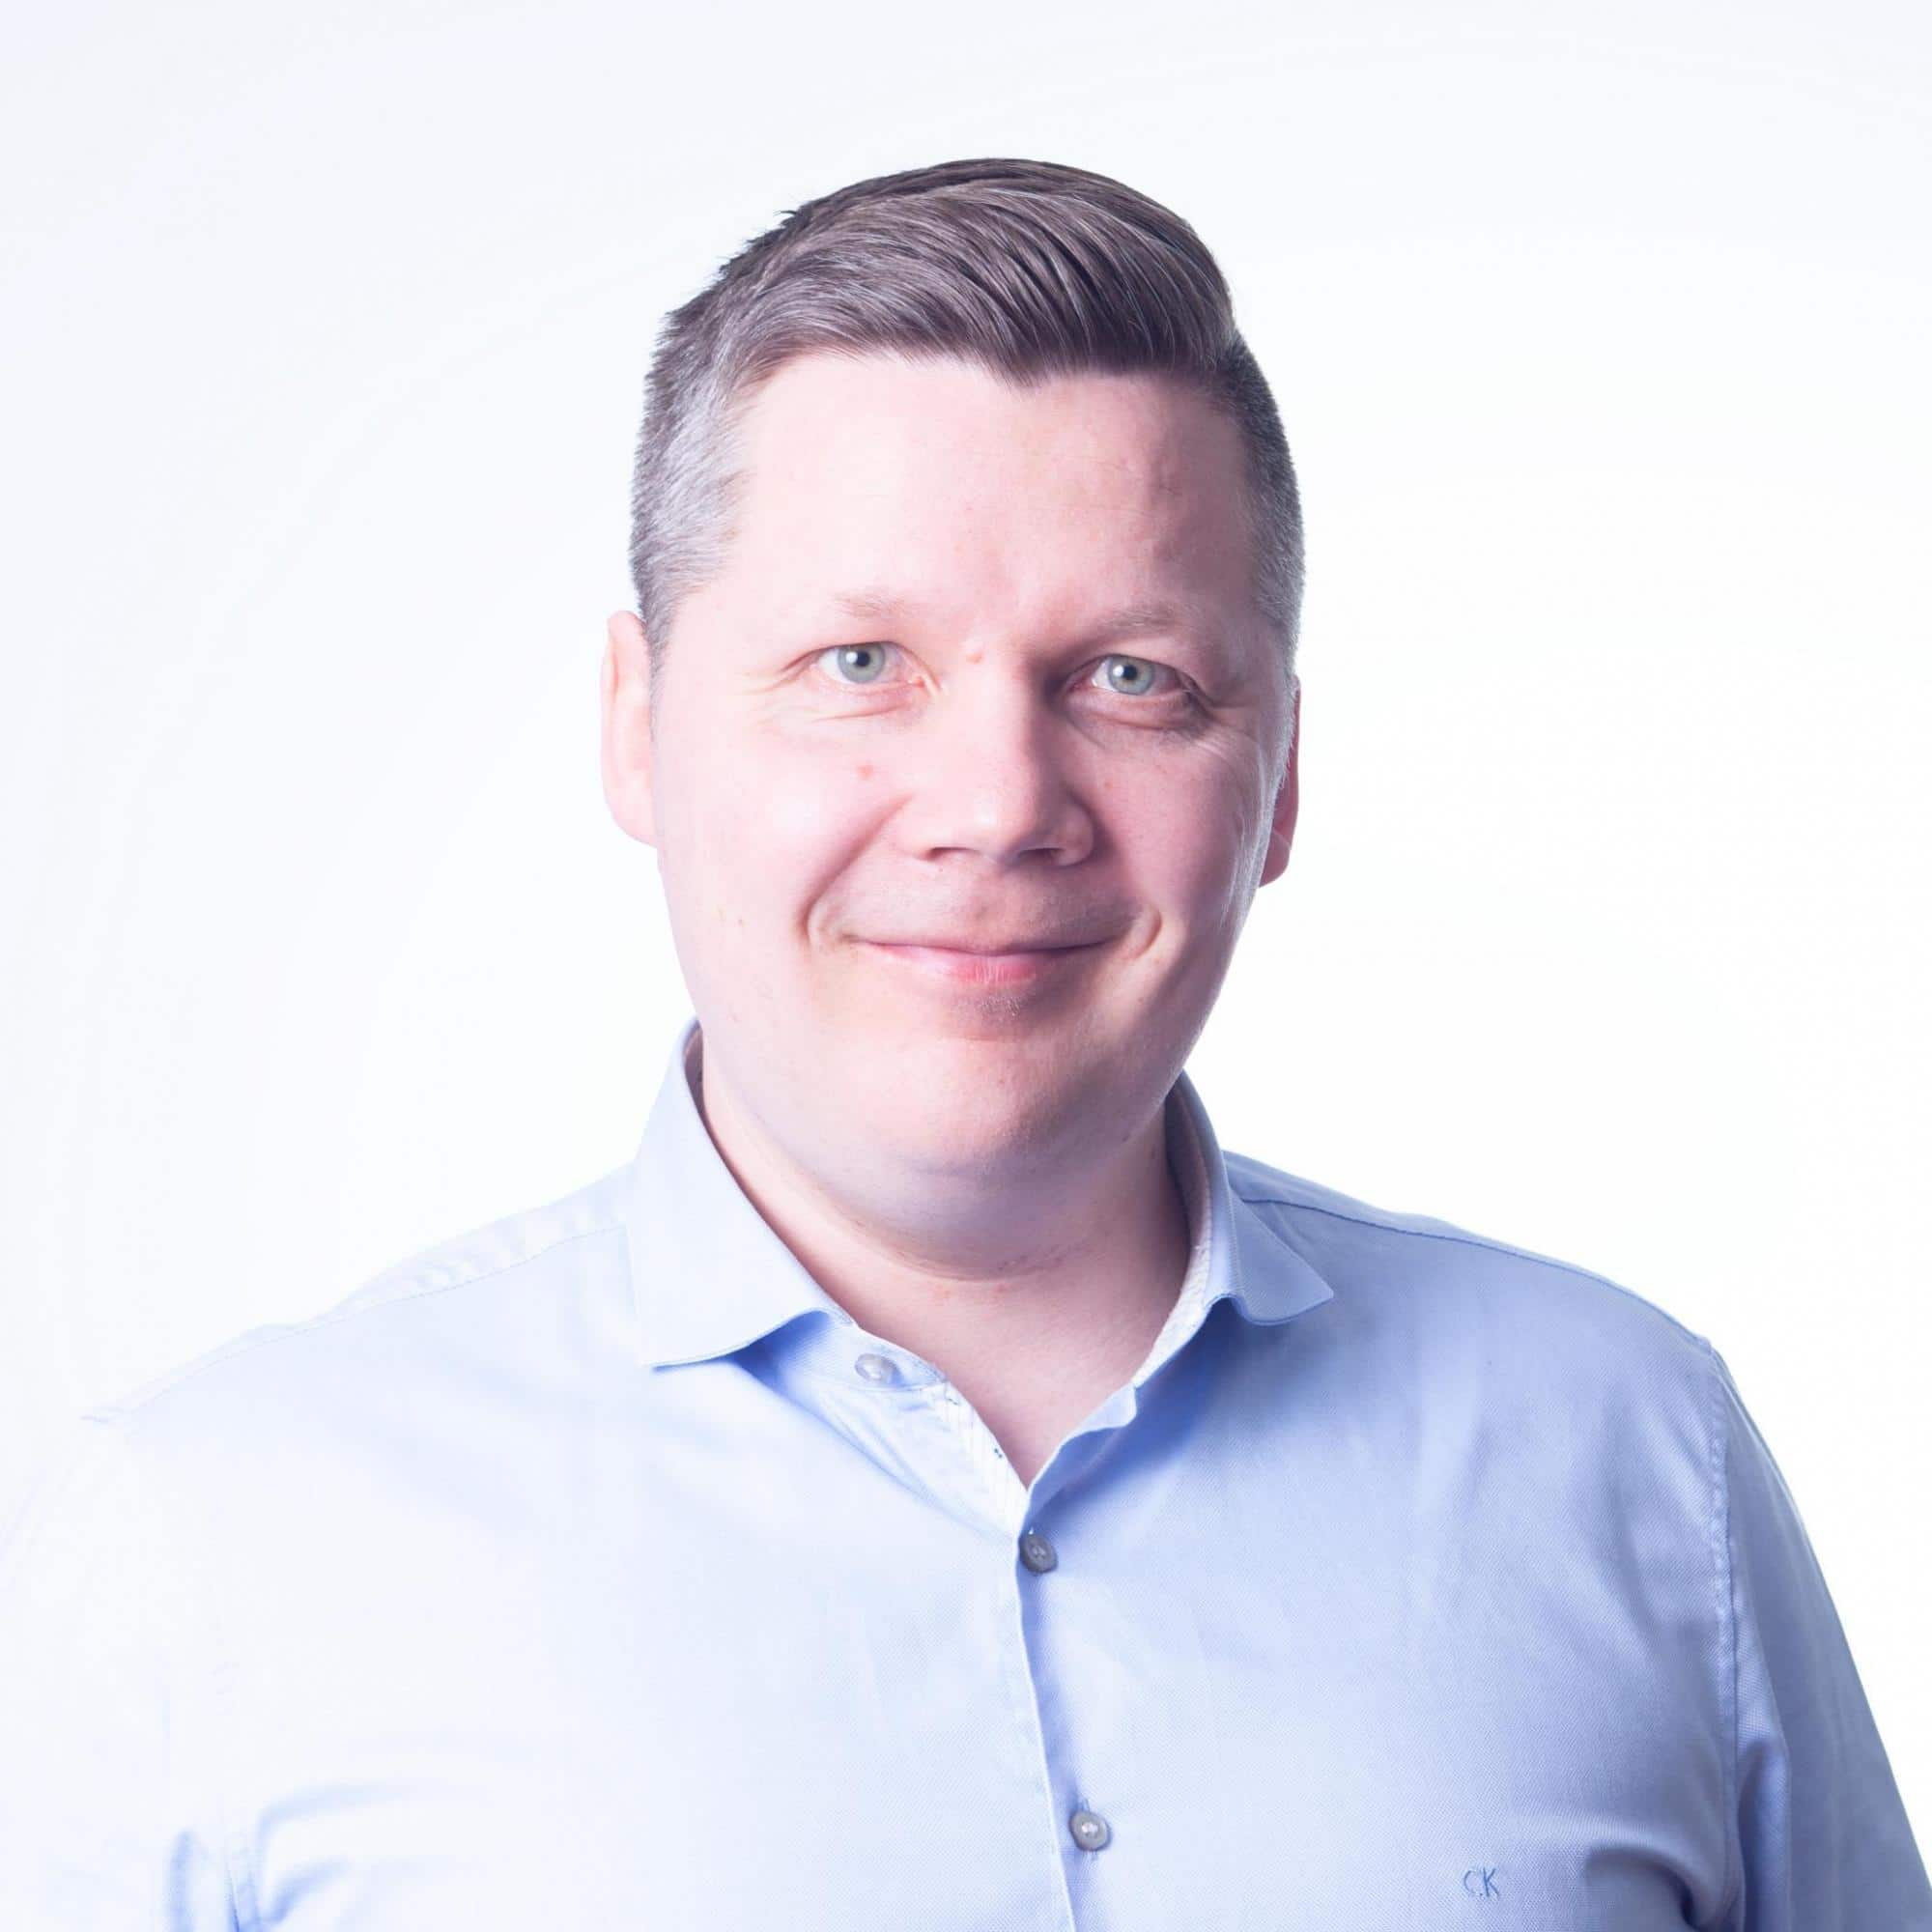 Janne Kyllönen is Chief Product Officer and Chairman of Board at QuietOn Ltd.